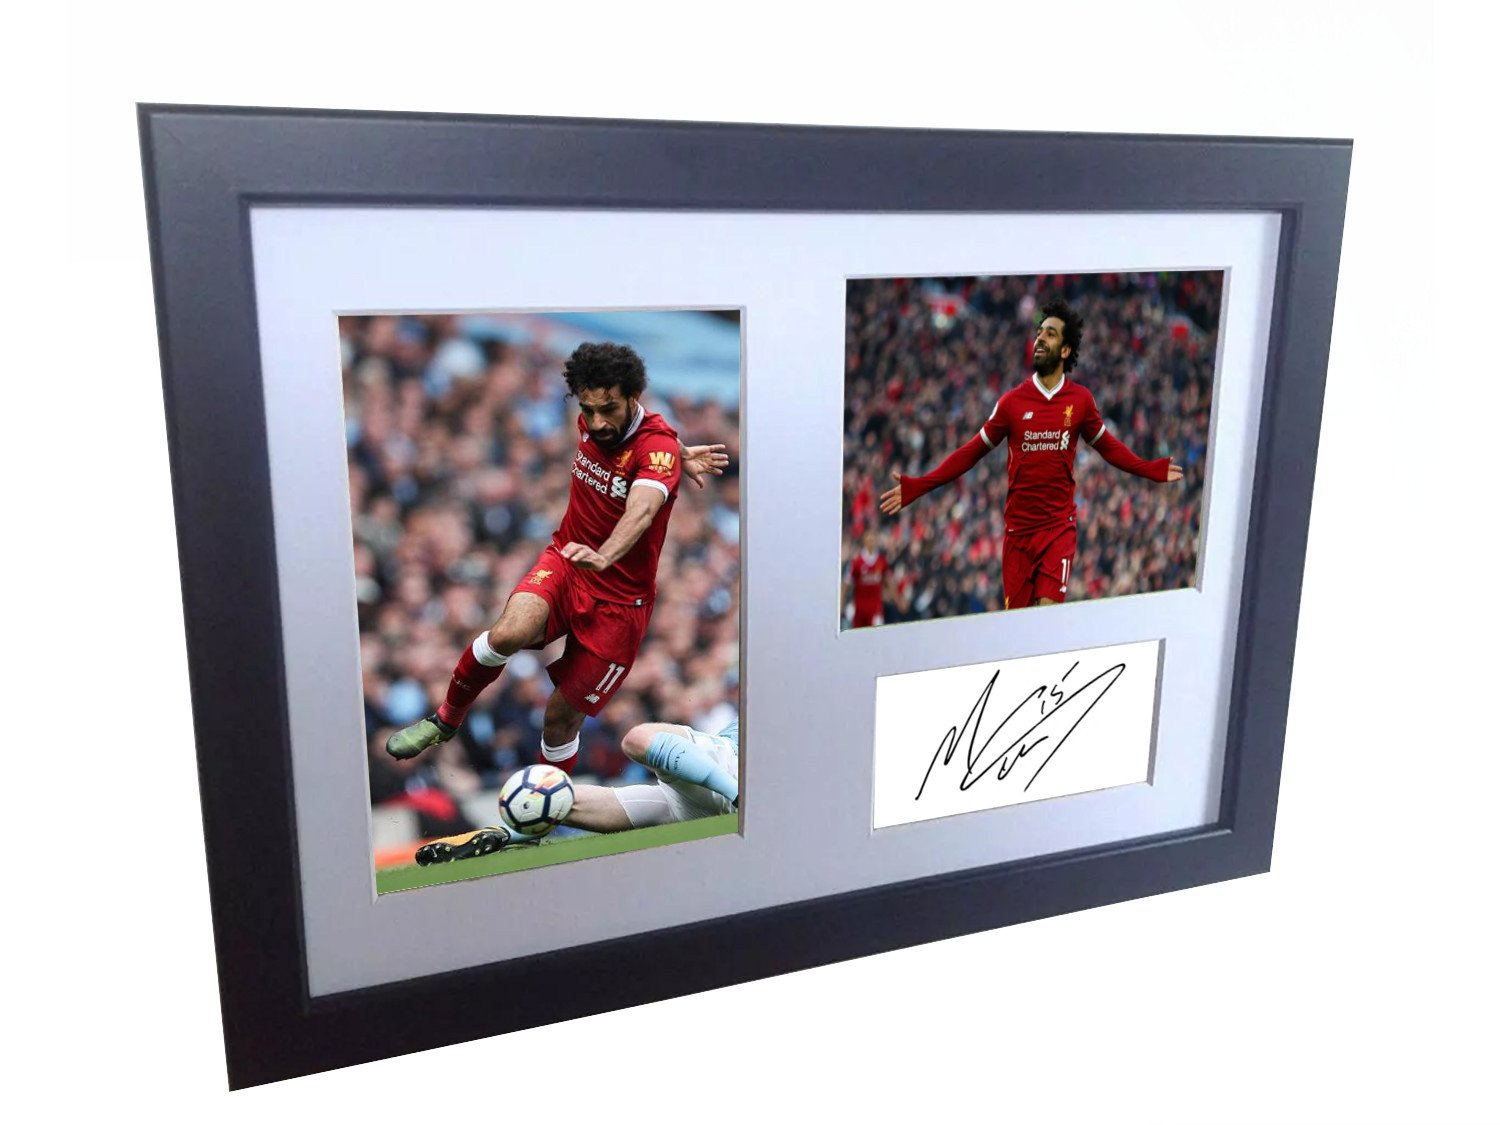 Mohamed Mo Salah 12x8 A4 Signed Liverpool FC - Autographed Photo Photograph Picture Frame Gift Soccer by Kicks (Image #1)